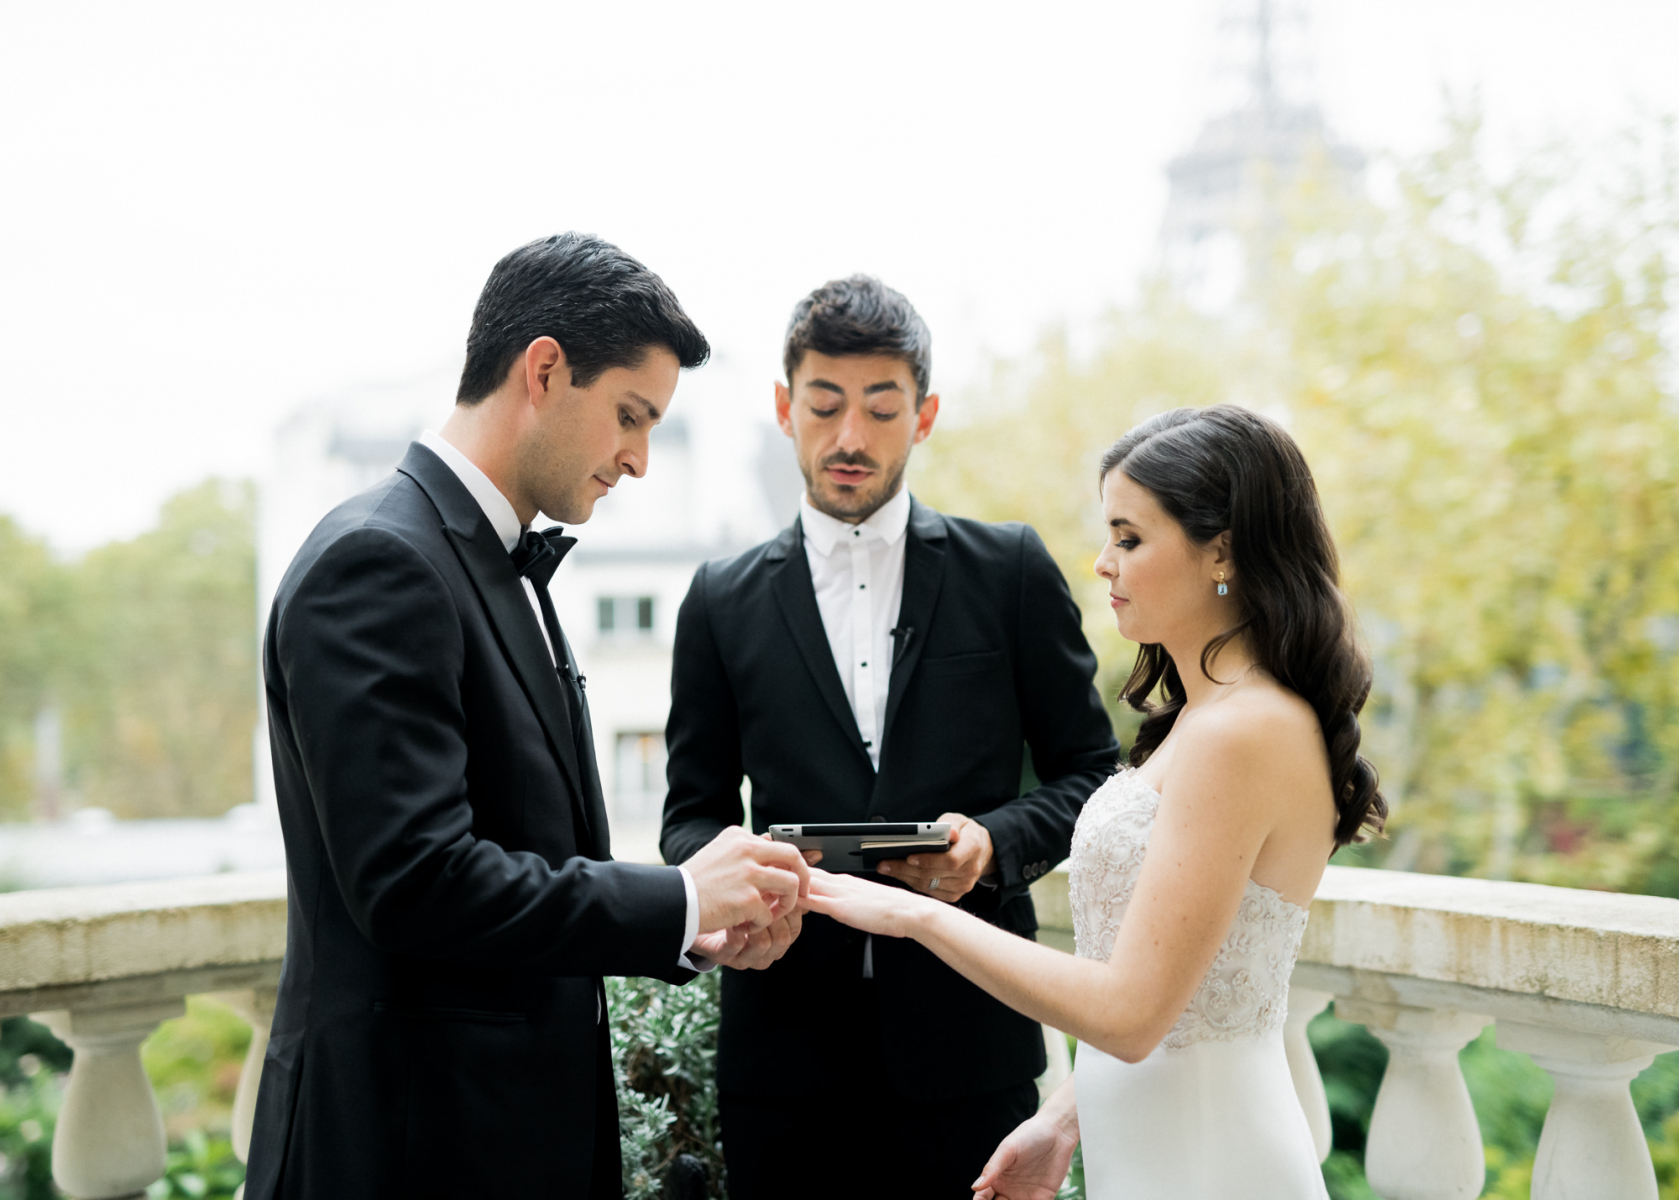 The ceremony took place on the balcony with Paris views